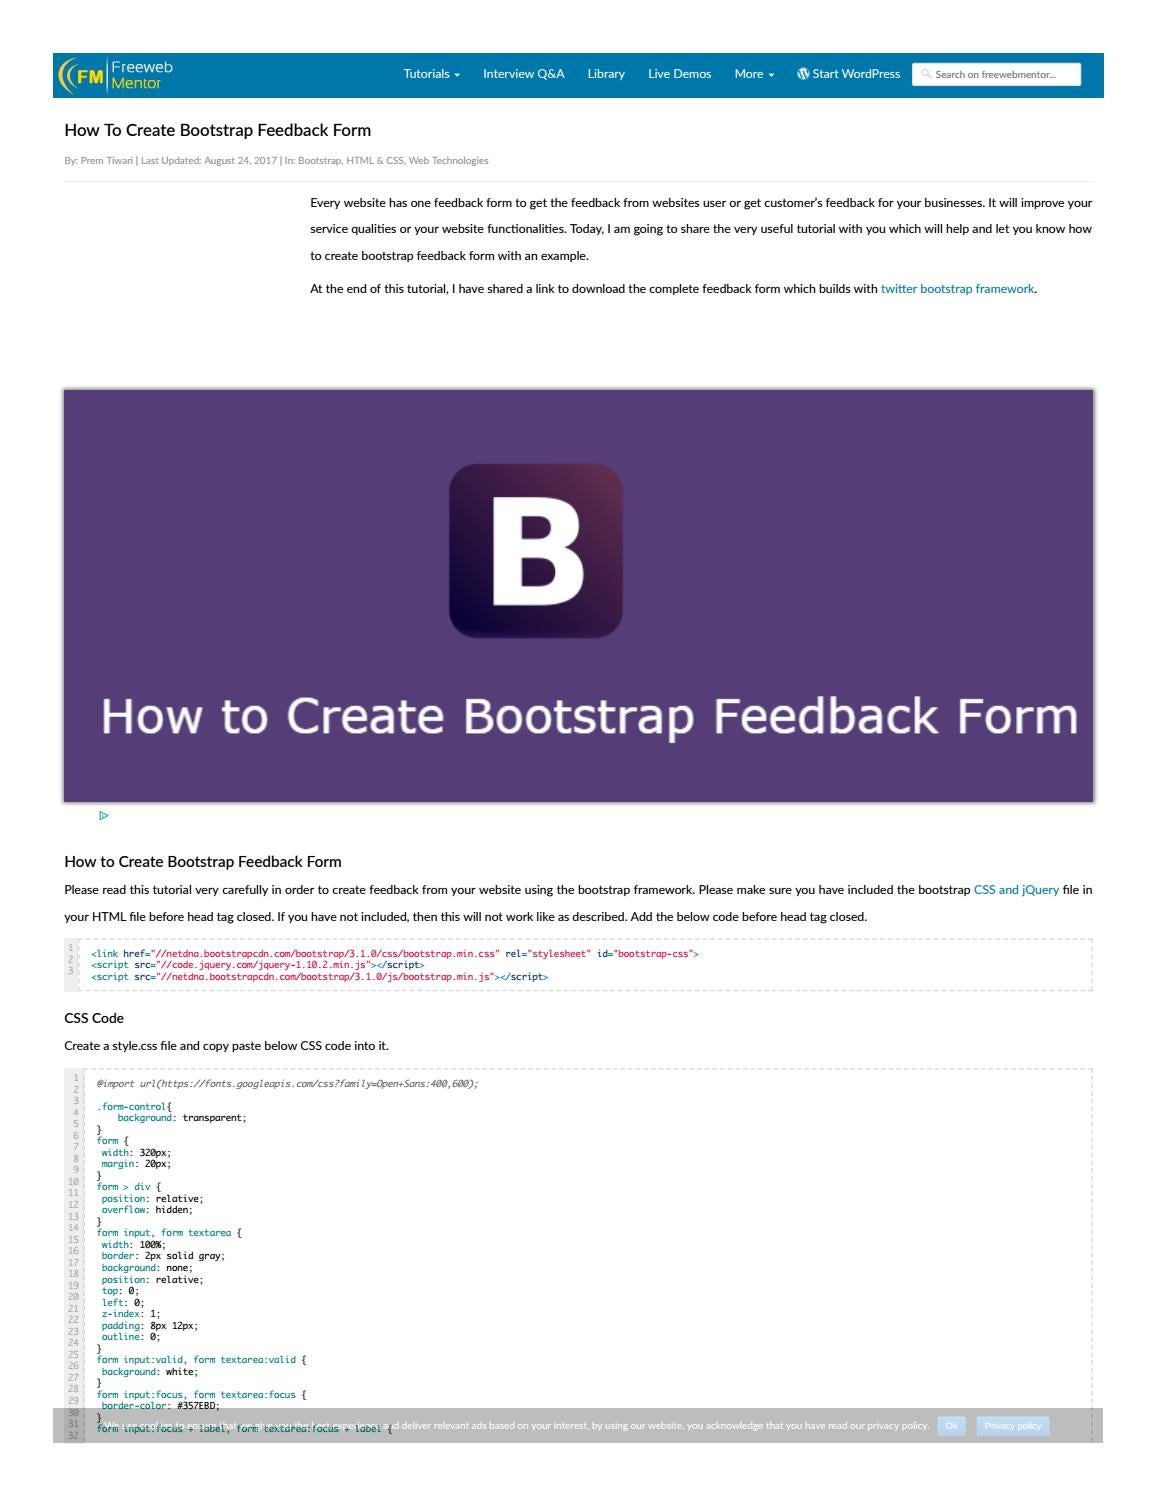 How To Create Bootstrap Feedback Form - Freewebmentor by